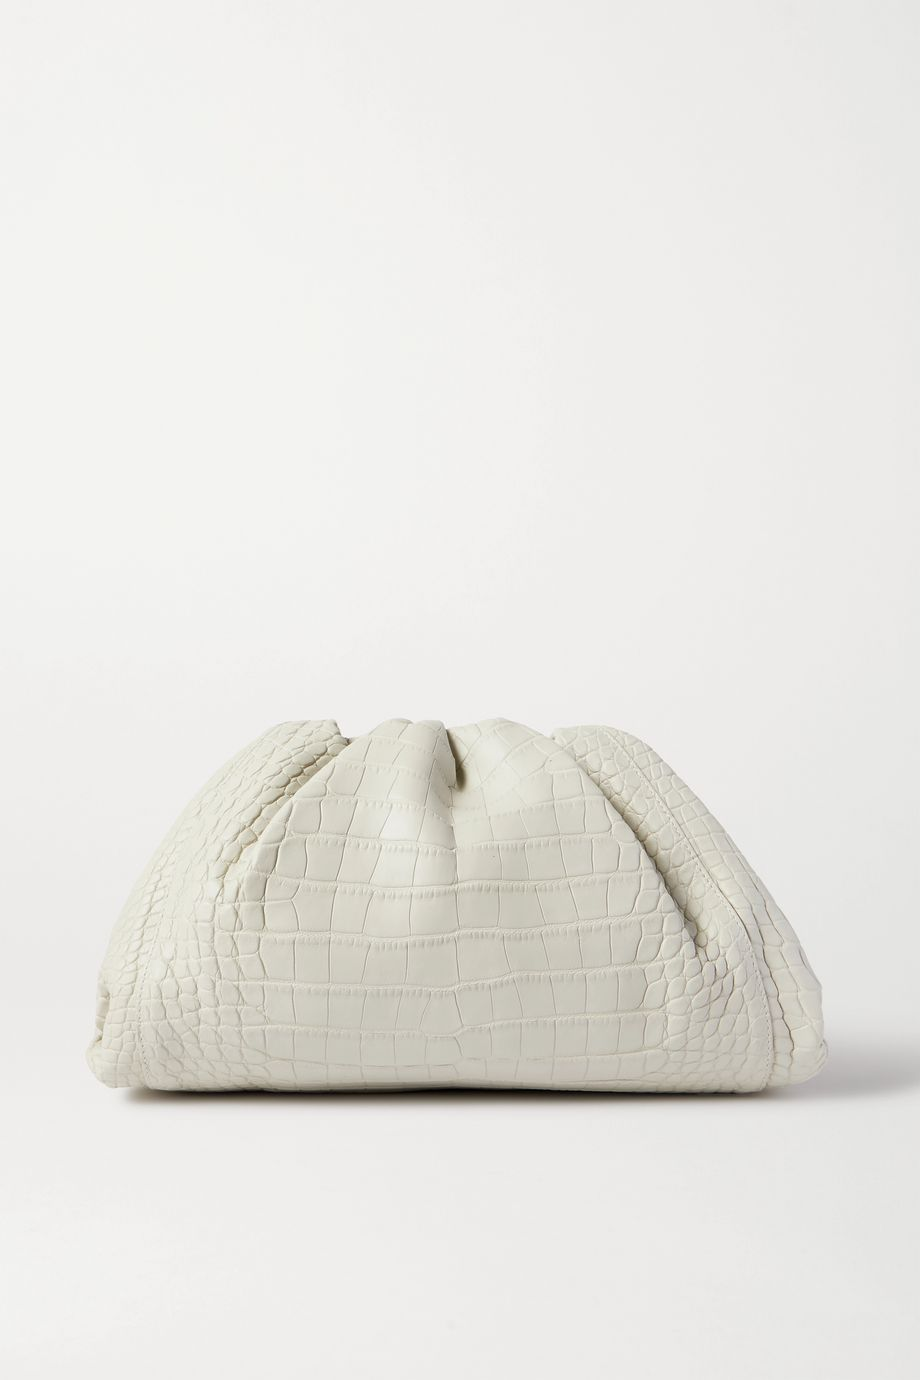 Bottega Veneta The Pouch große Clutch aus Alligatorleder mit Raffungen